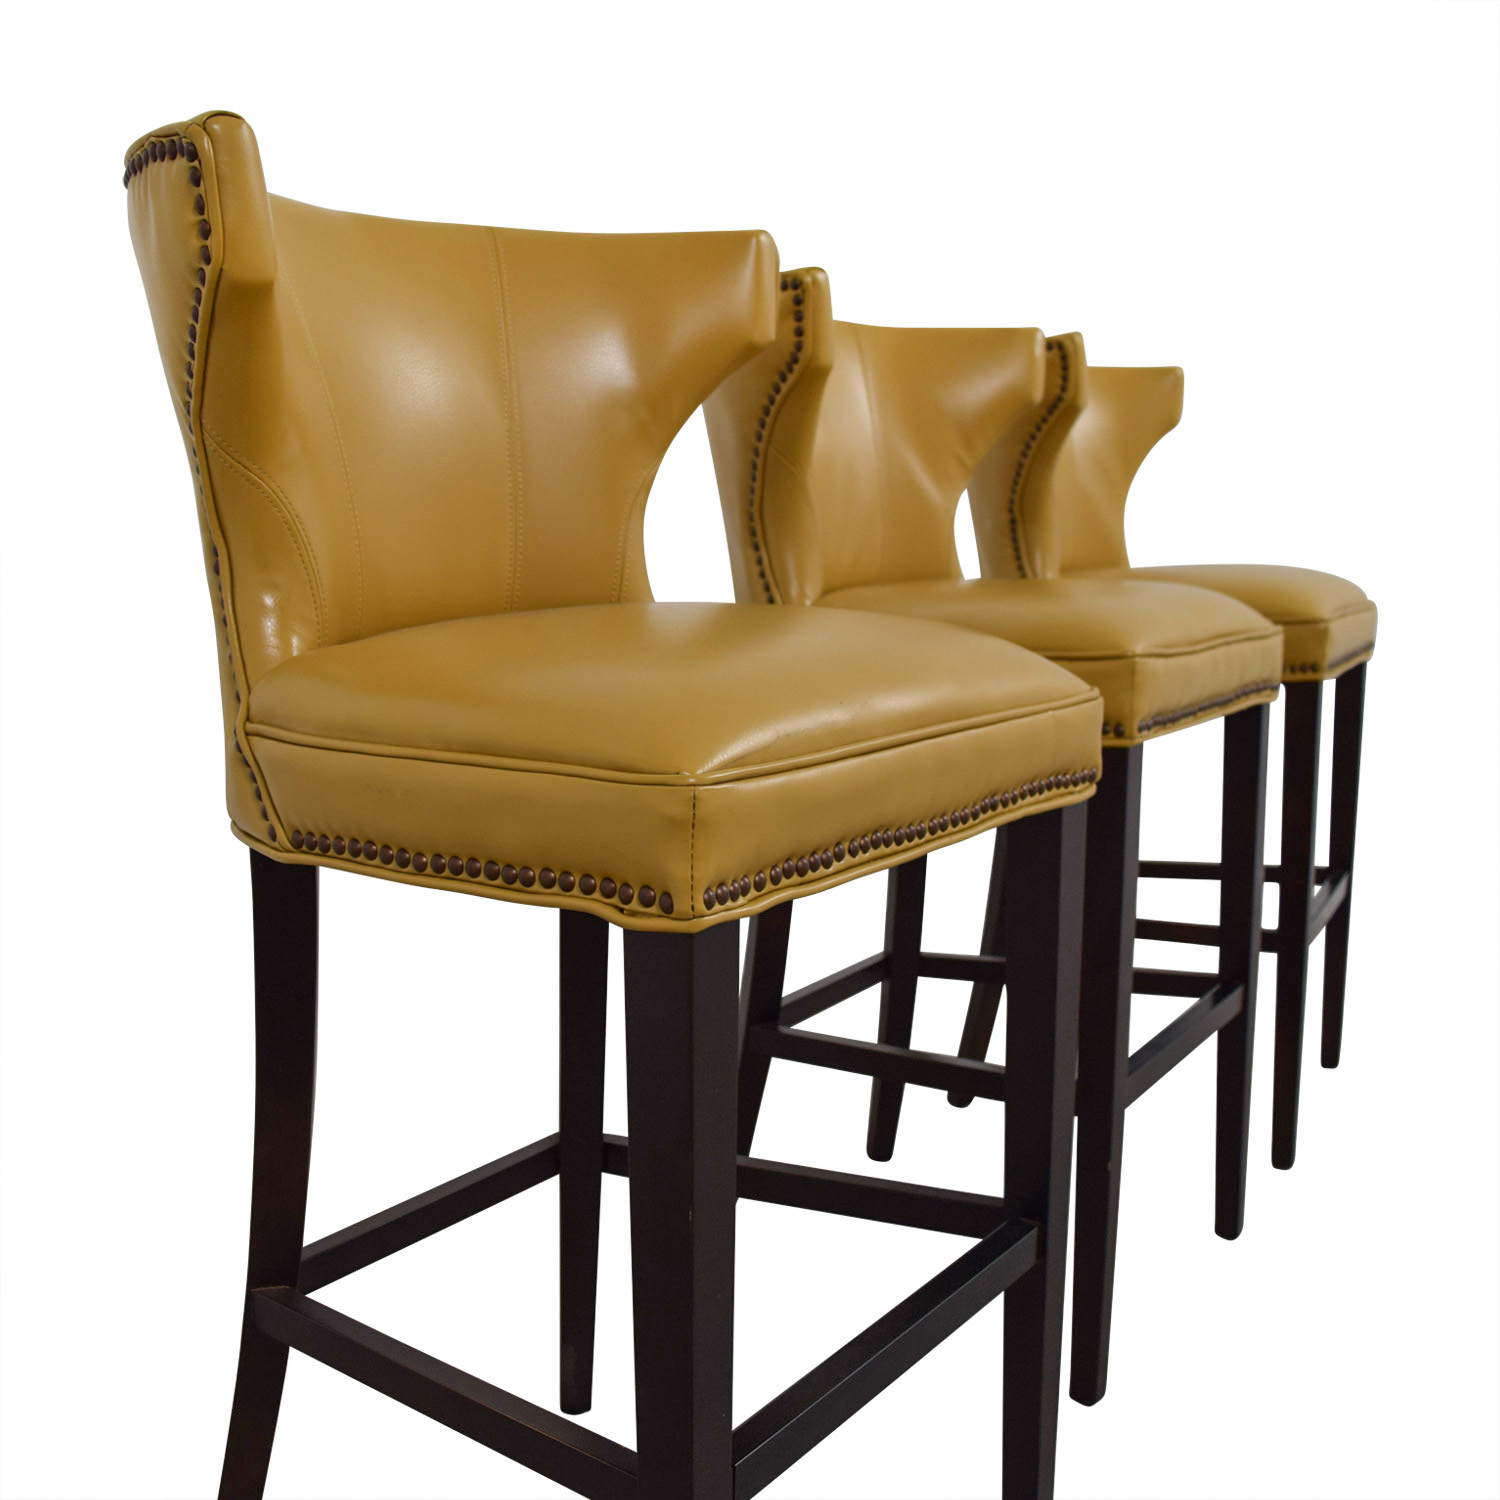 Yellow Leather Bar Stools - Holiday Hours